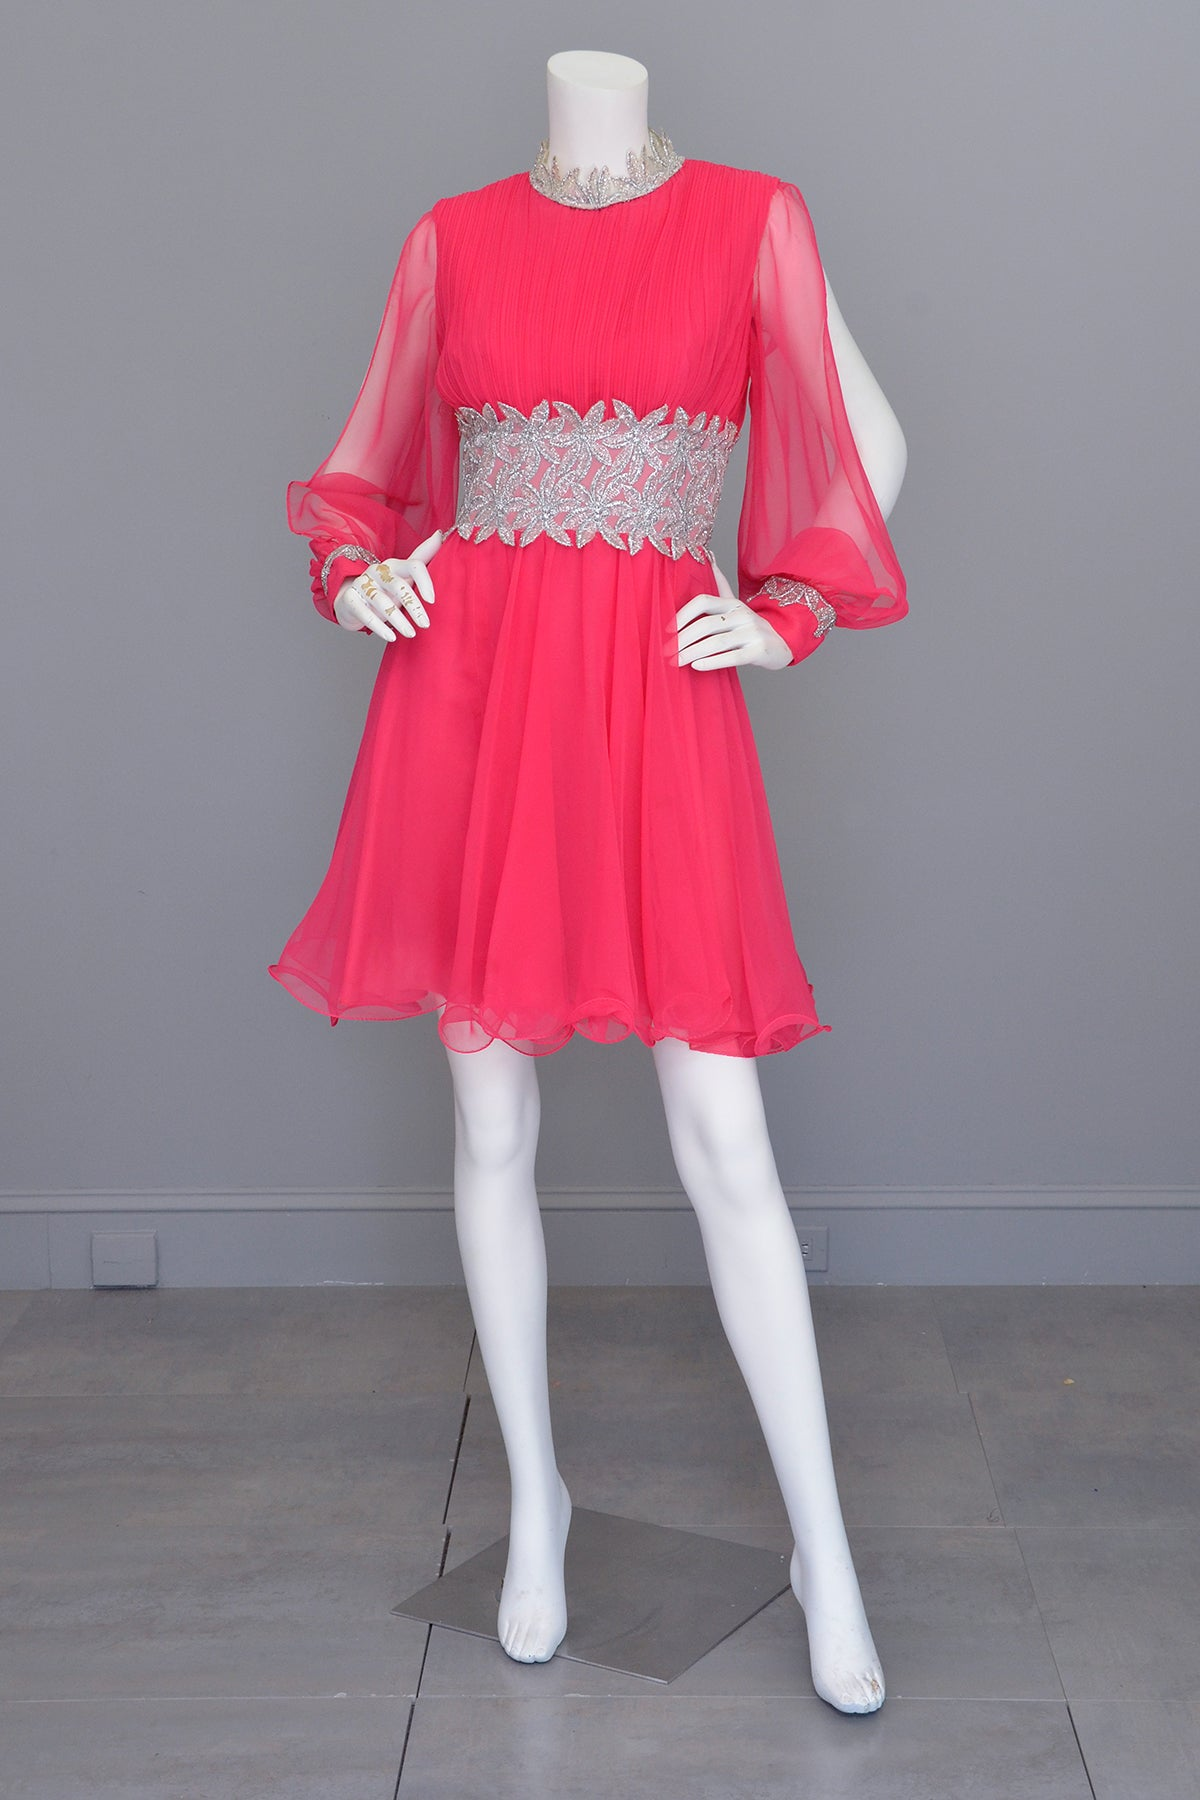 1960s Hot Pink Chiffon Party Dress with Silver Lamé Waistline | Disco Dress